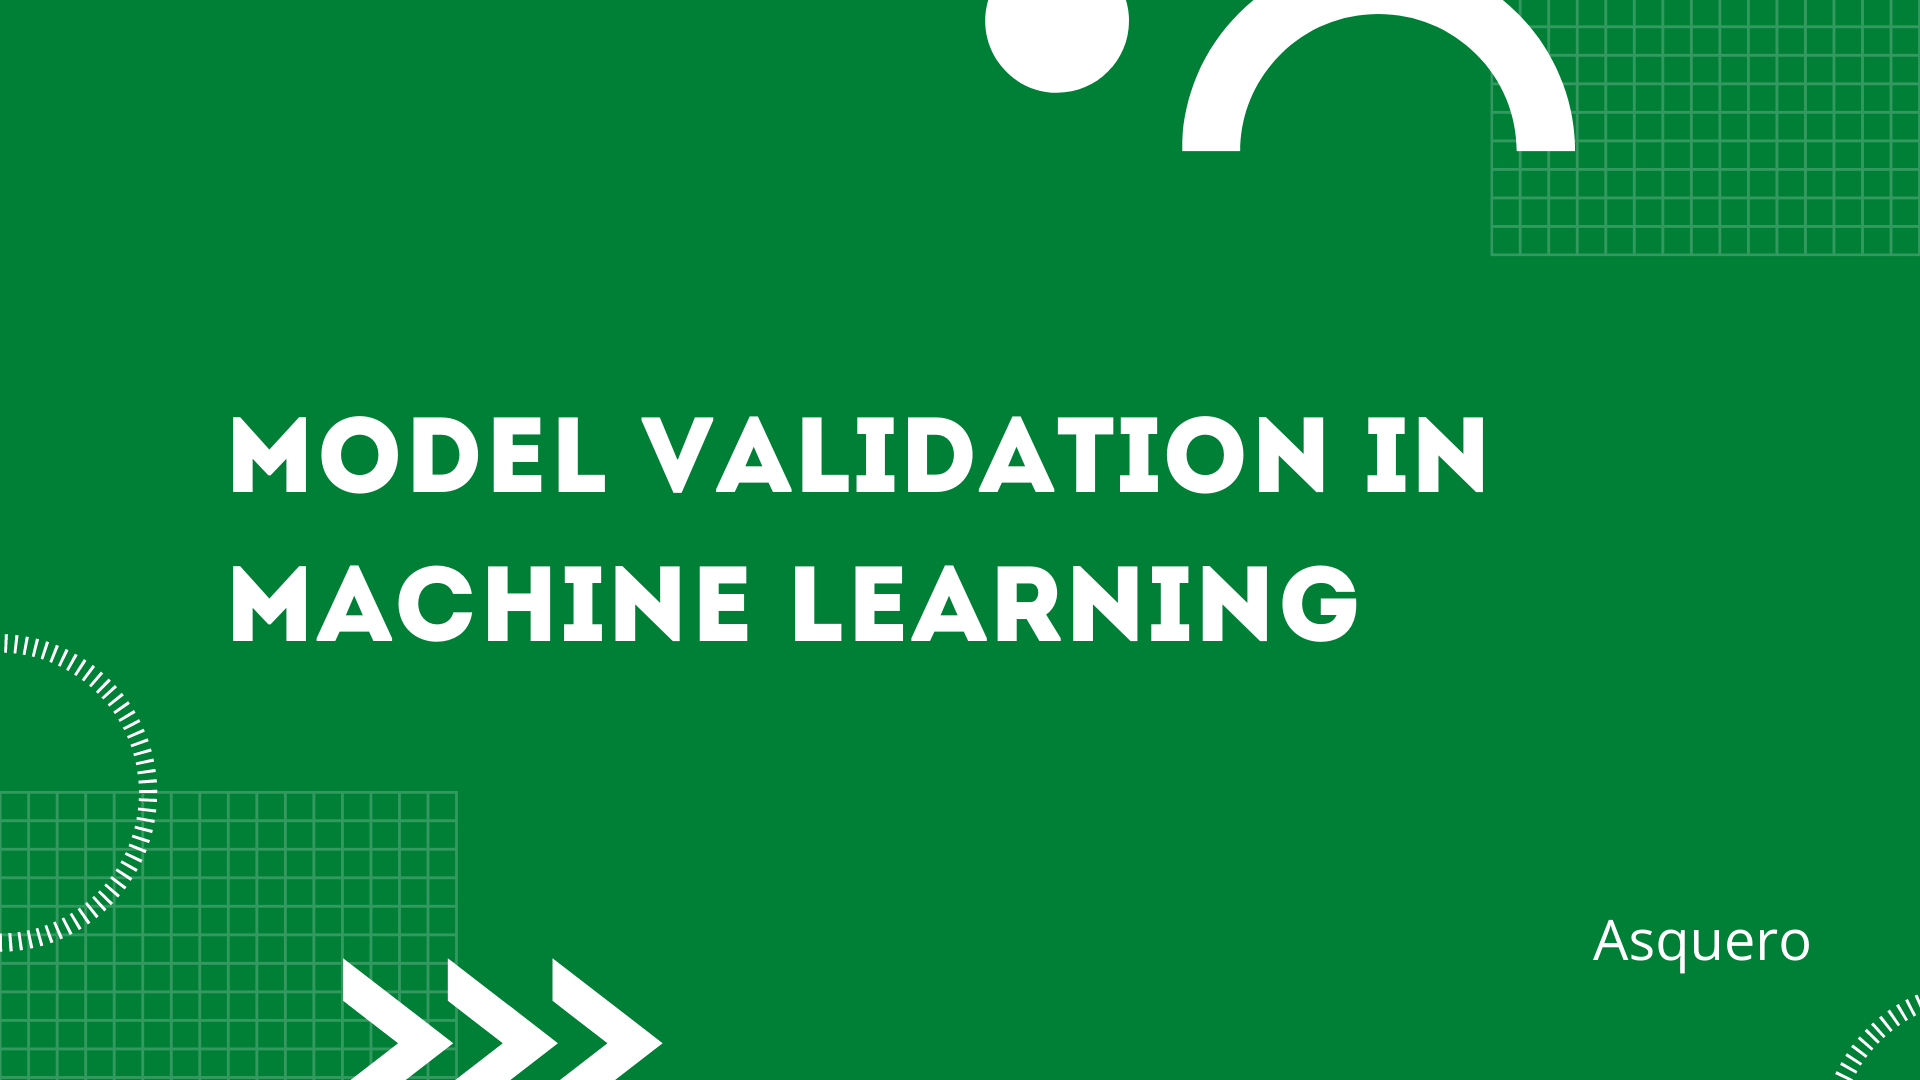 Basic Model Validation in Machine Learning